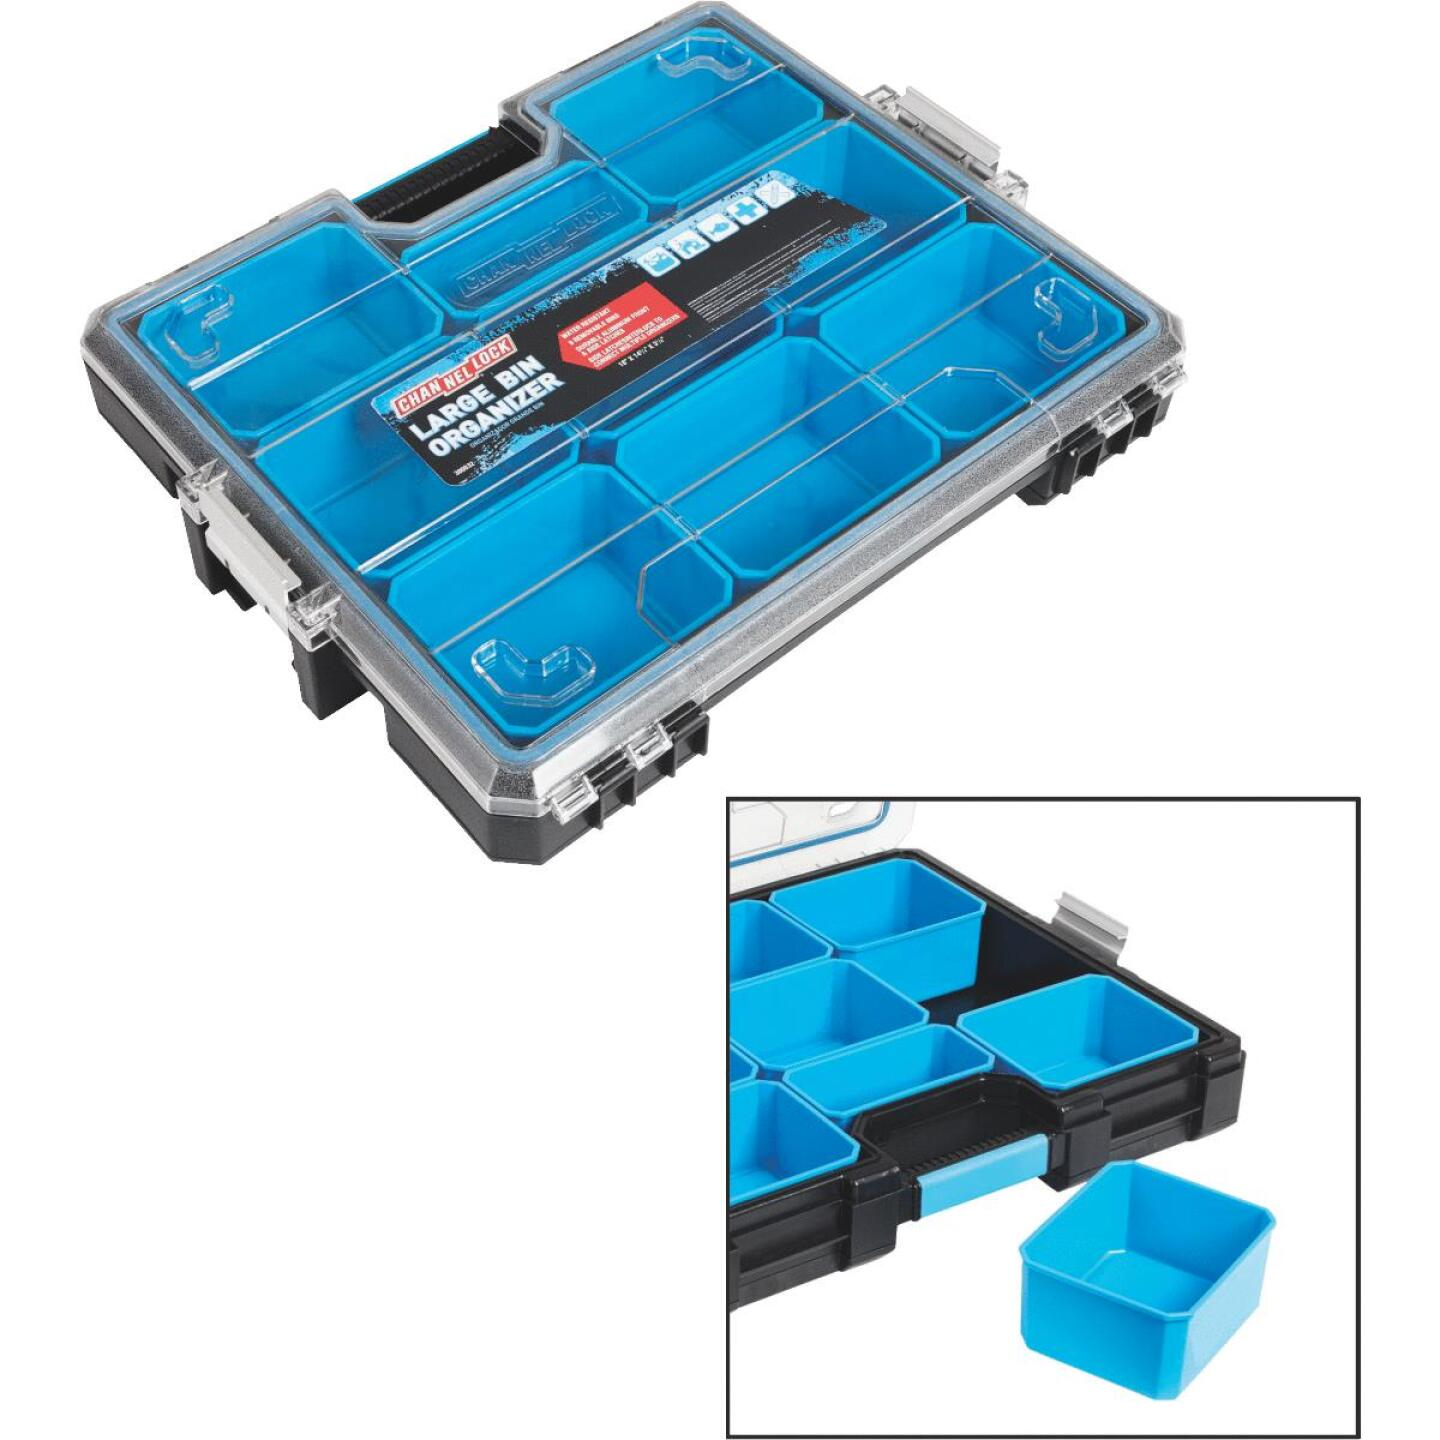 Channellock Large Parts Storage Box Image 1